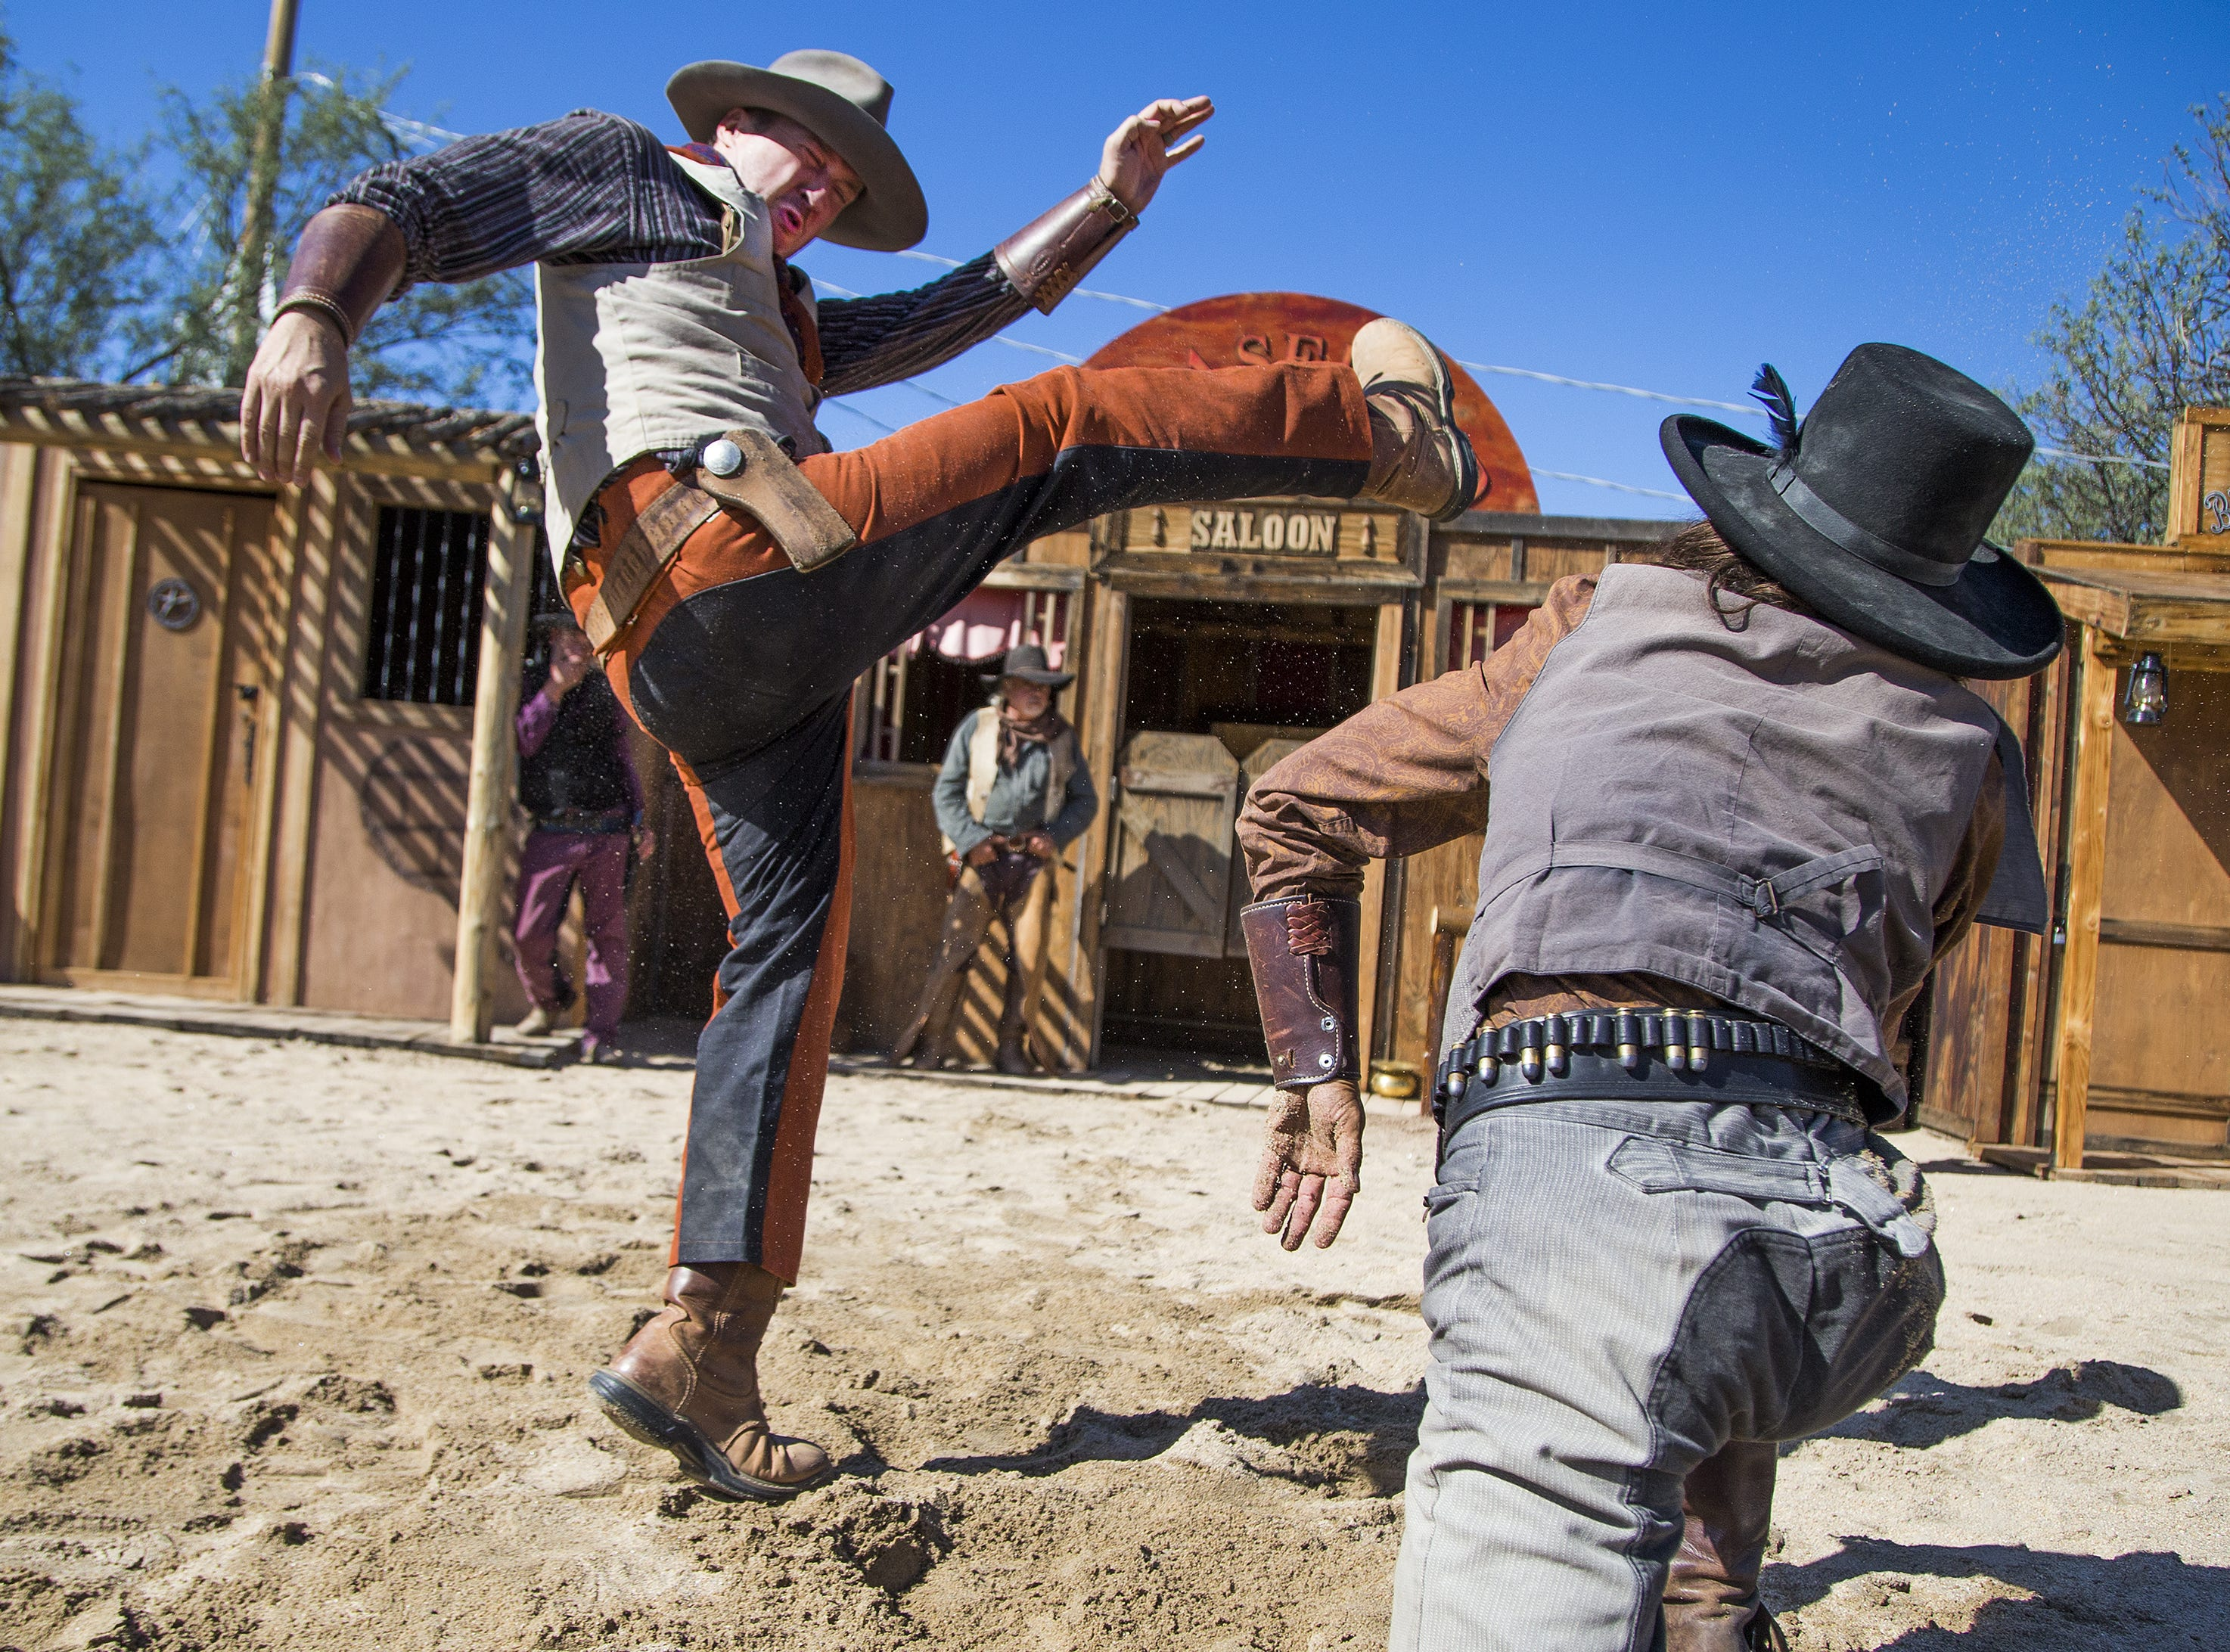 Actors with Six Gun Entertainment perform their Wild West stunt show at Frontier Town in Cave Creek, Tuesday, Oct. 9, 2018.